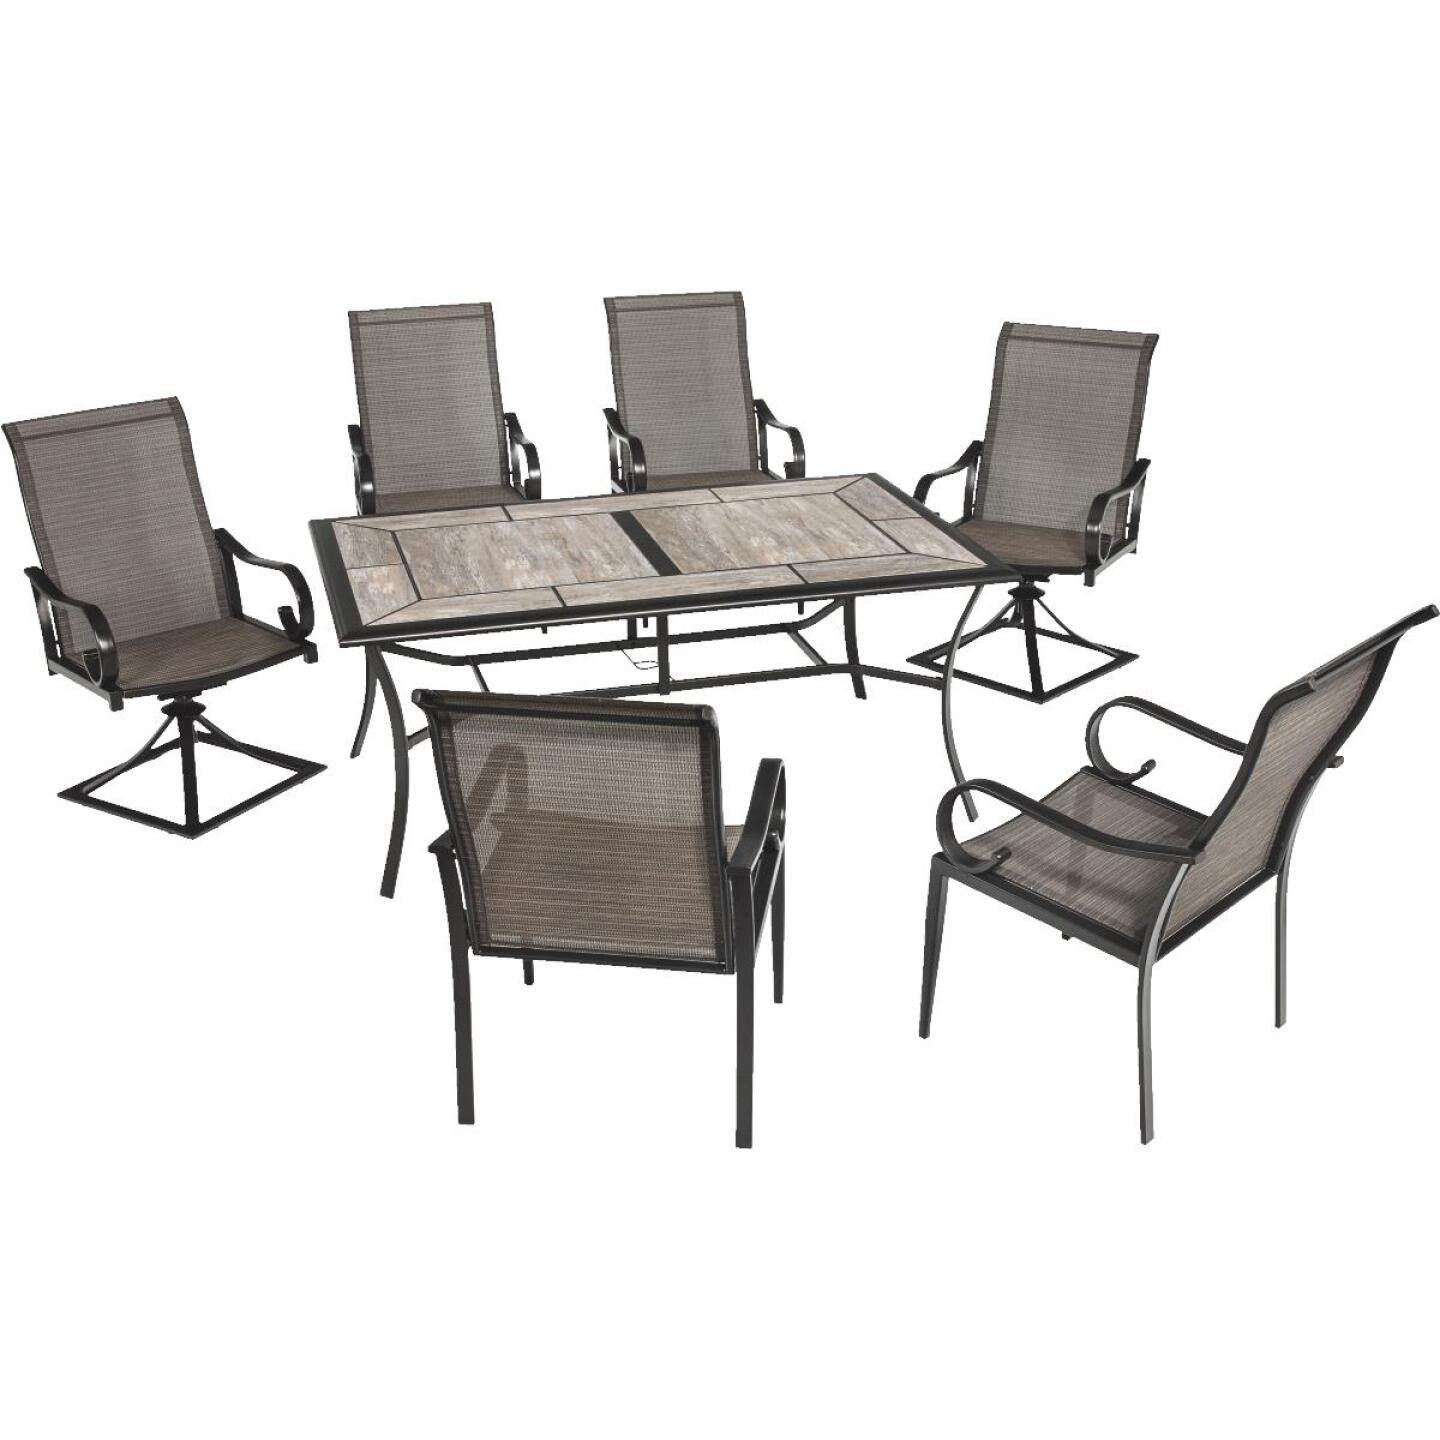 Outdoor Expressions Berkshire 7-Piece Dining Set Image 52